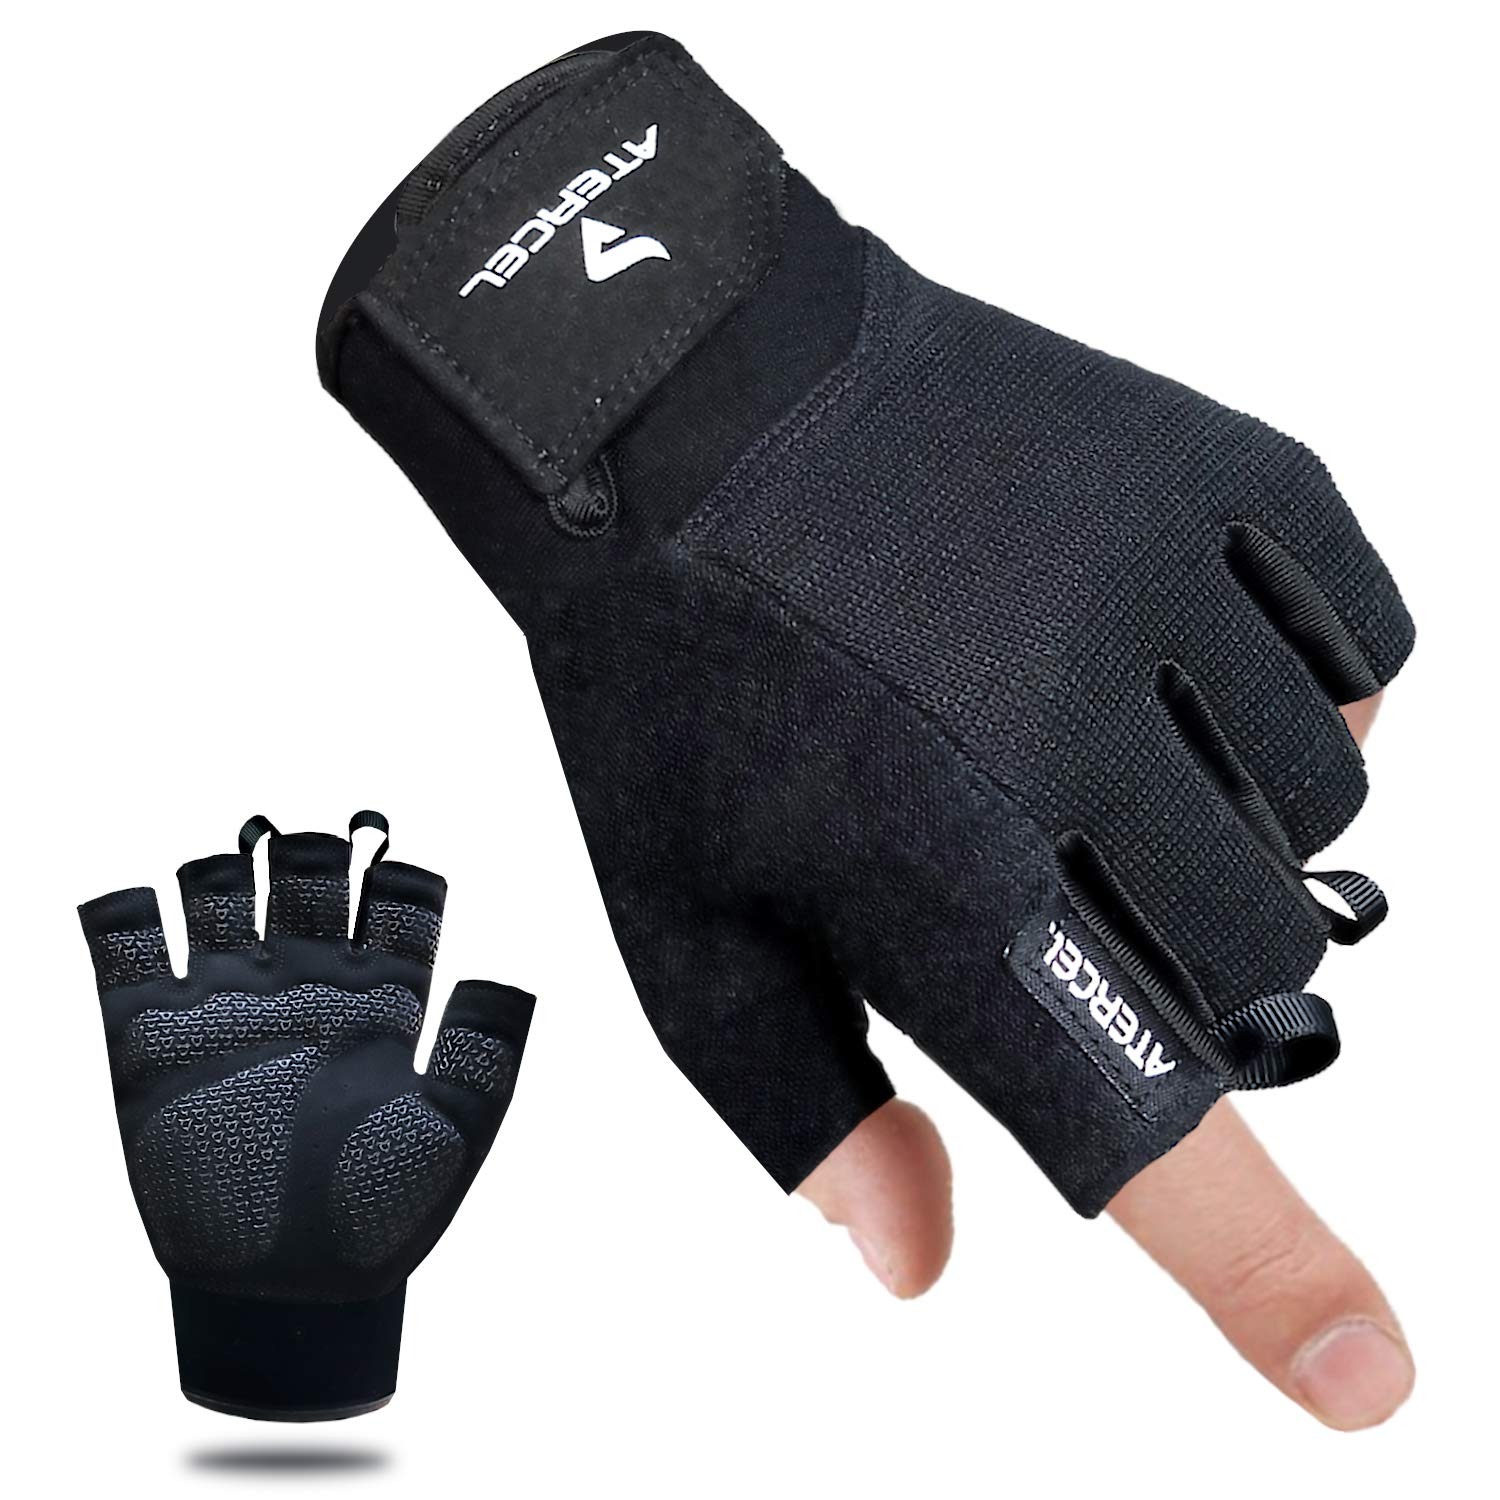 Atercel Workout Gloves, Best Exercise Gloves for Weight Lifting, Crossfit, Cycling, Gym, Training, Breathable & Snug fit, for Men & Women (Black, XS)